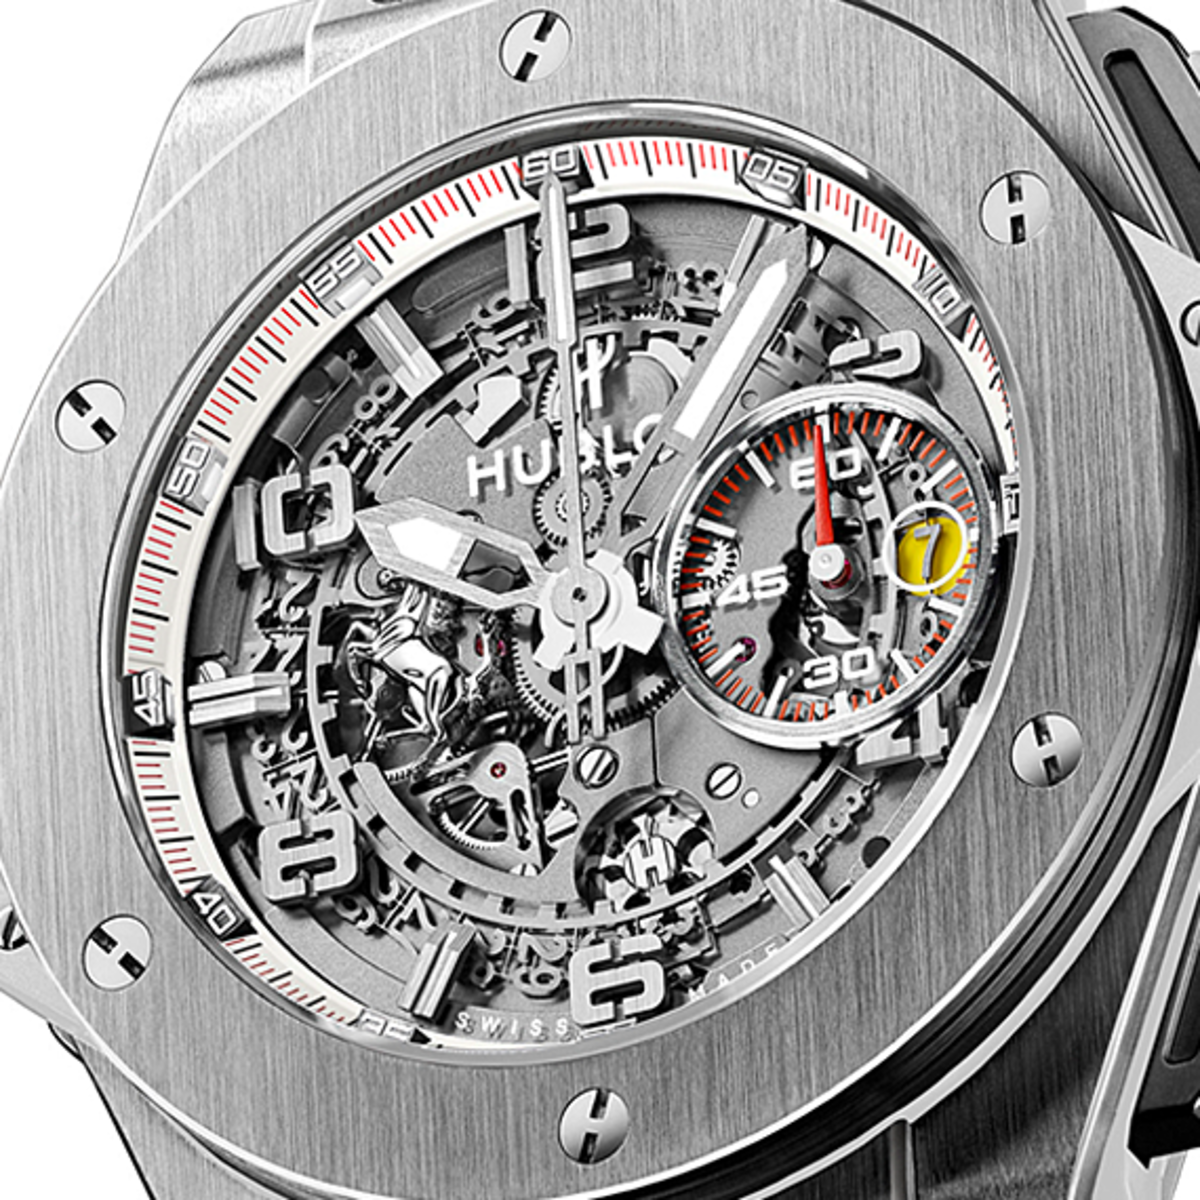 Ferrari x HUBLOT - Big Bang Ferrari California 30 Giappone Watch - 1